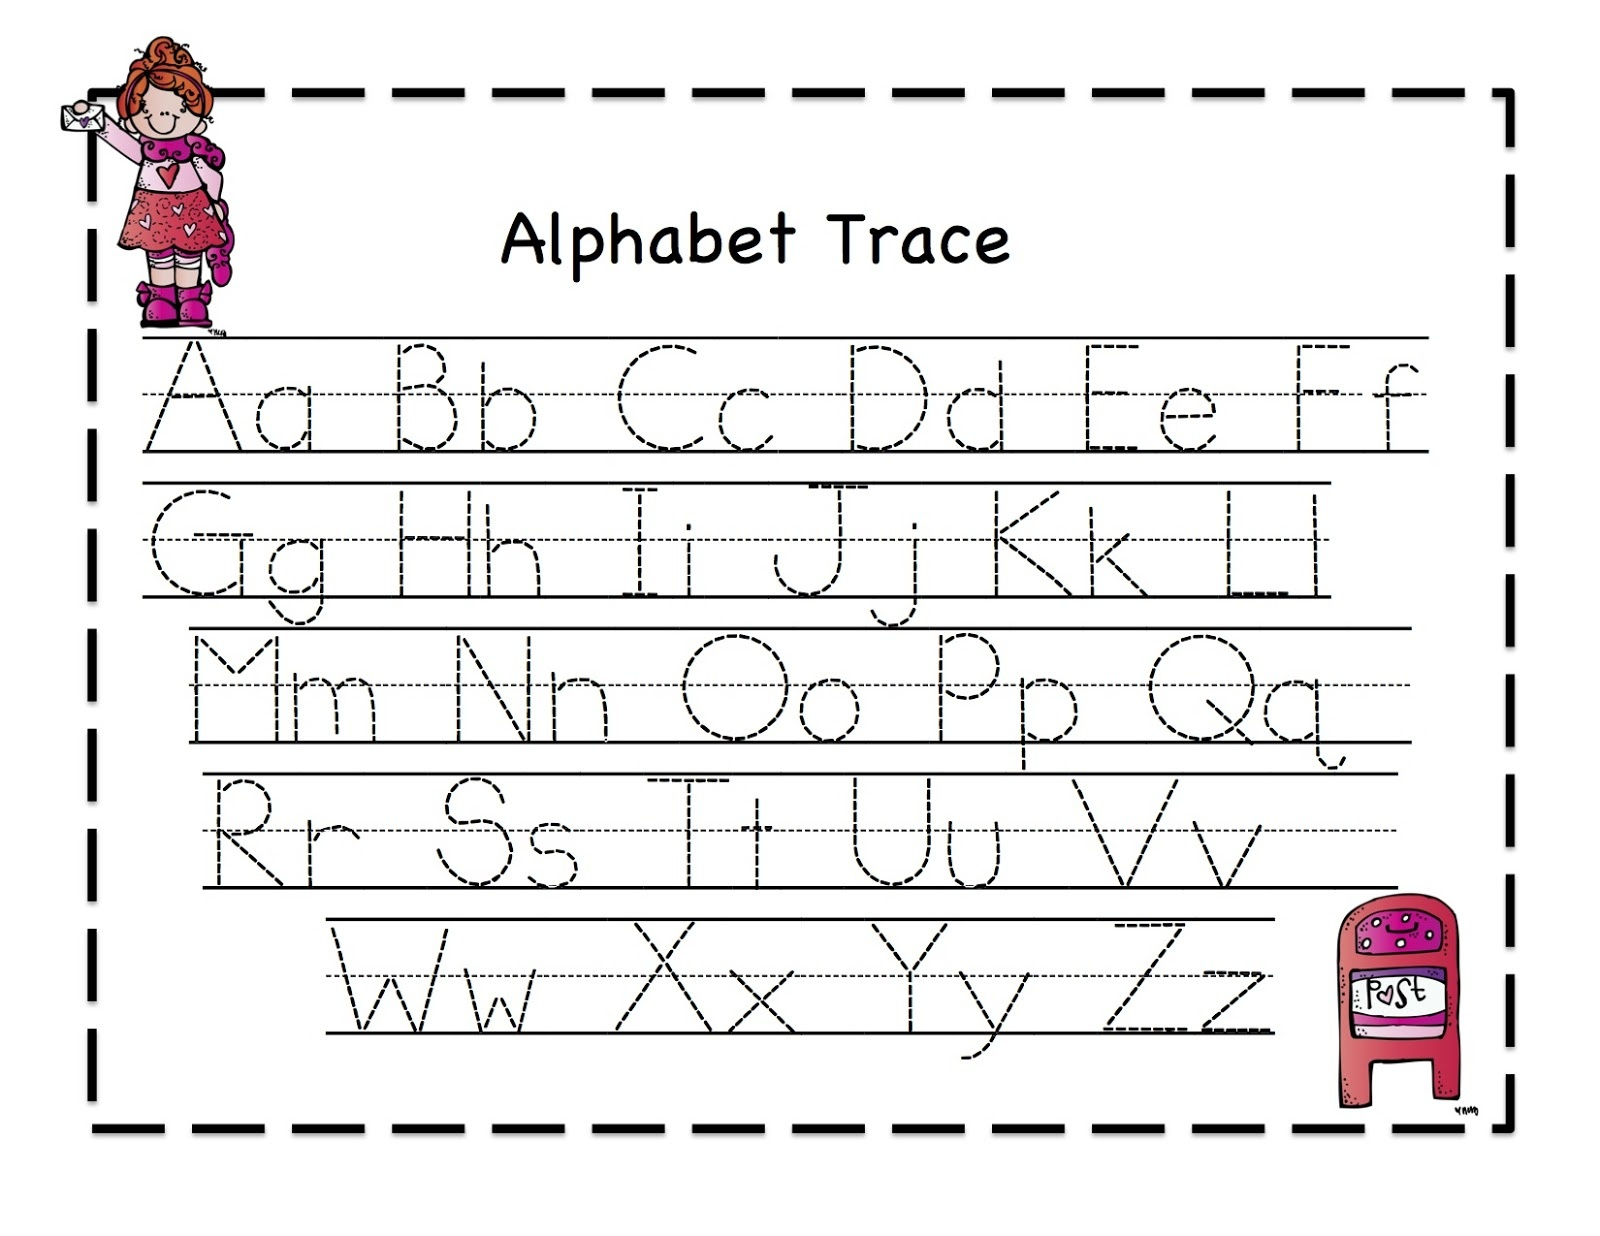 42 Educative Letter Tracing Worksheets | Kittybabylove - Free Printable Letter Tracing